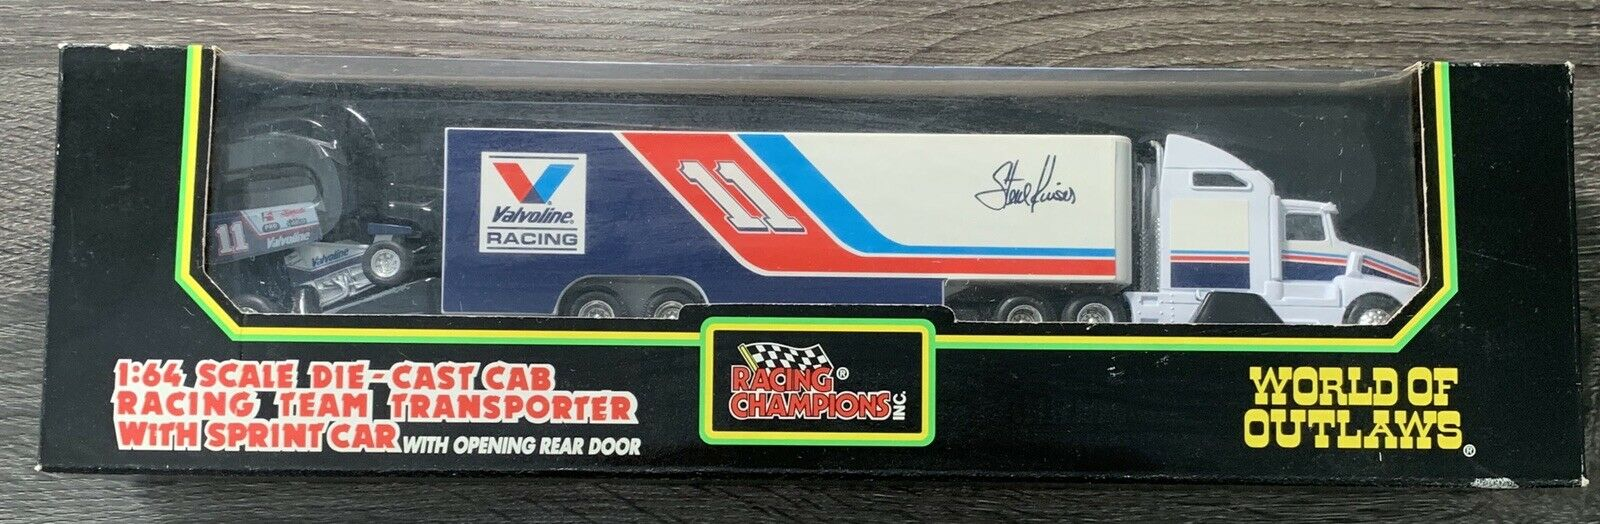 Racing Champions World of Outlaws  11 Steve KINSER 1 64 Hauler avec Sprint voiture new in box